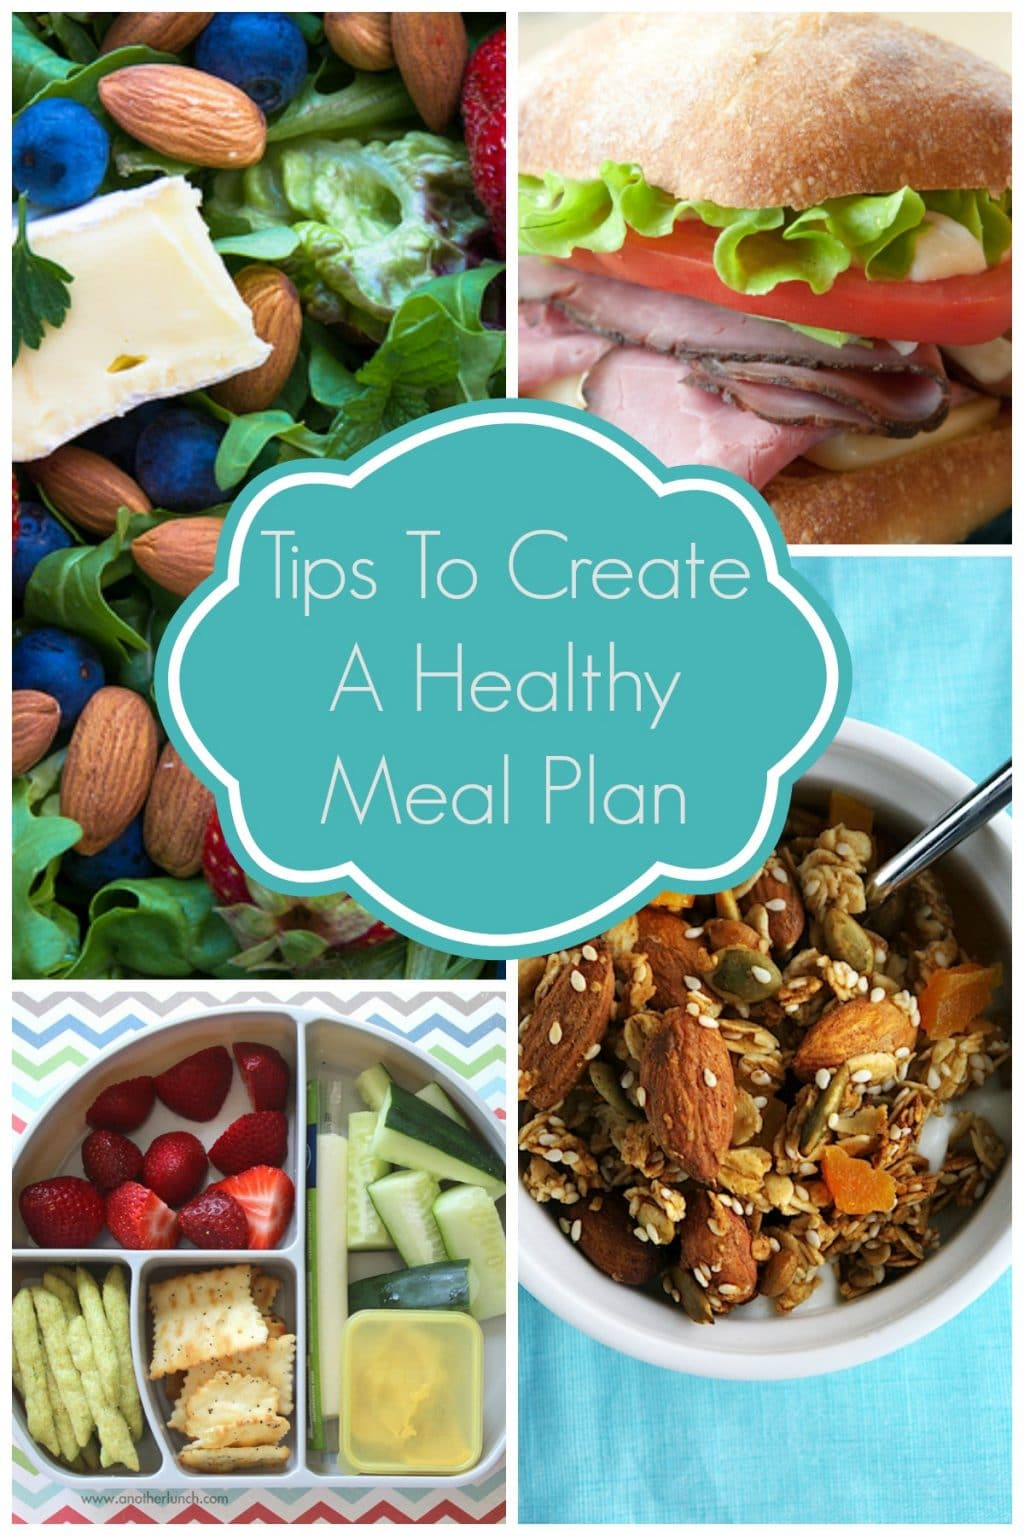 Tips to create a healthy meal plan for your family - easily!